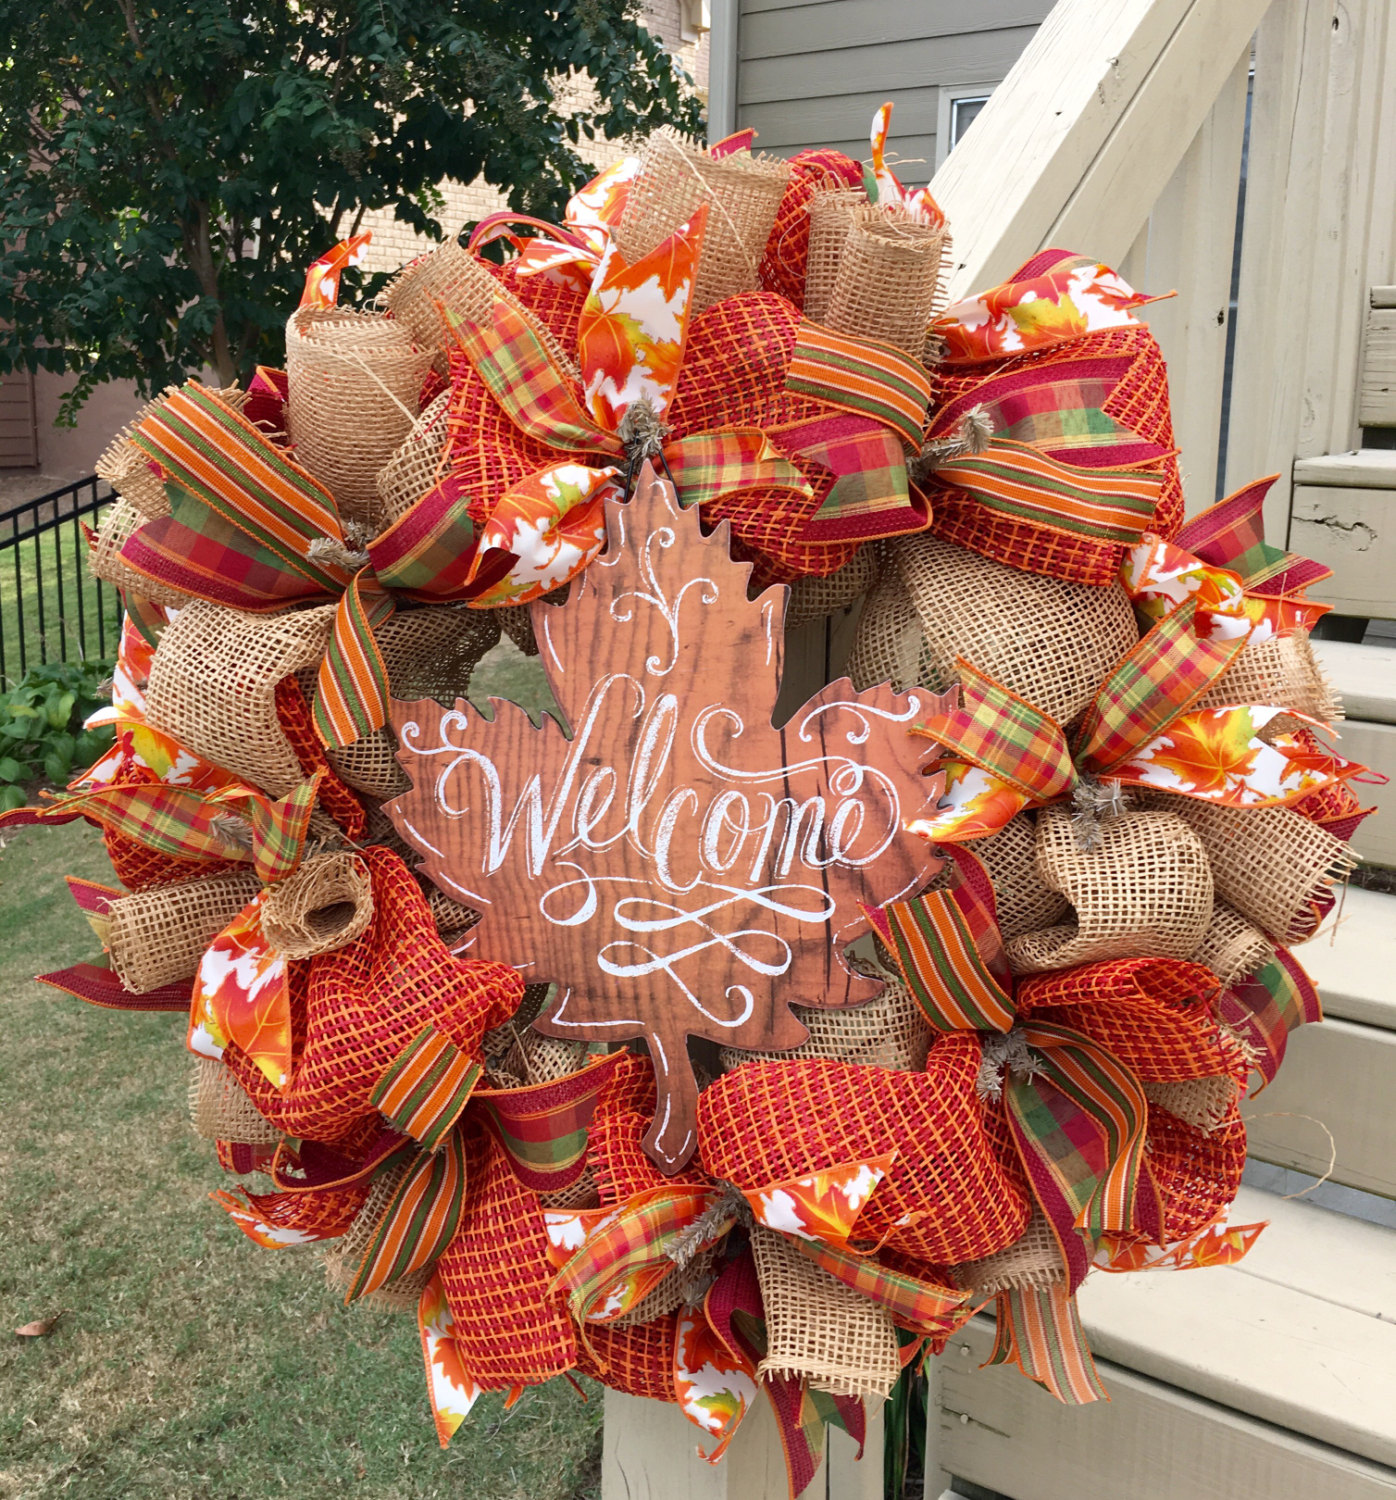 Thanksgiving front door decorations - 16 Whimsical Handmade Thanksgiving Wreath Designs For Your Front Door